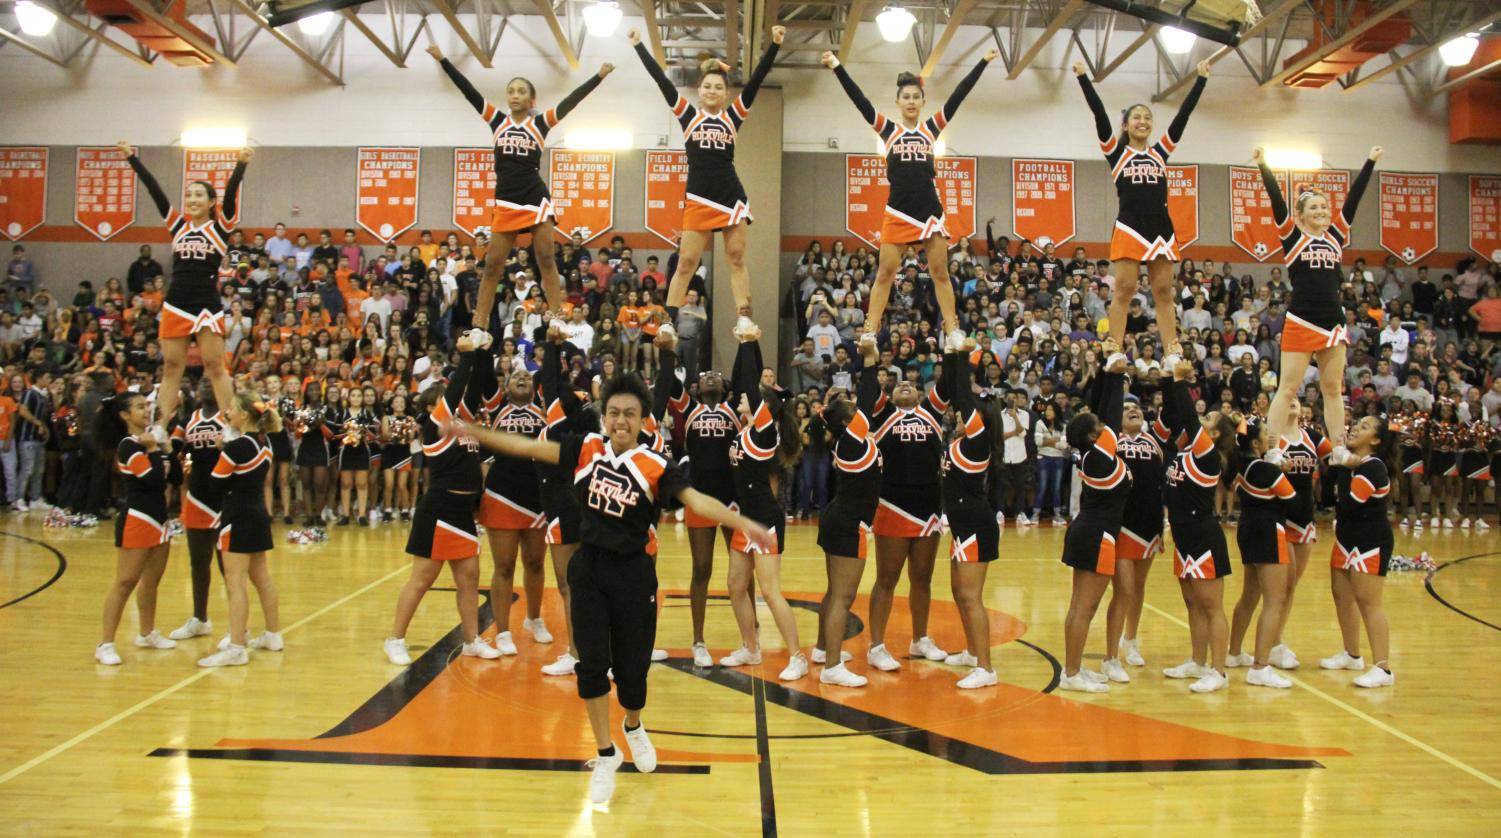 Varsity+cheer+pumps+up+the+crowd+during+their+performance.